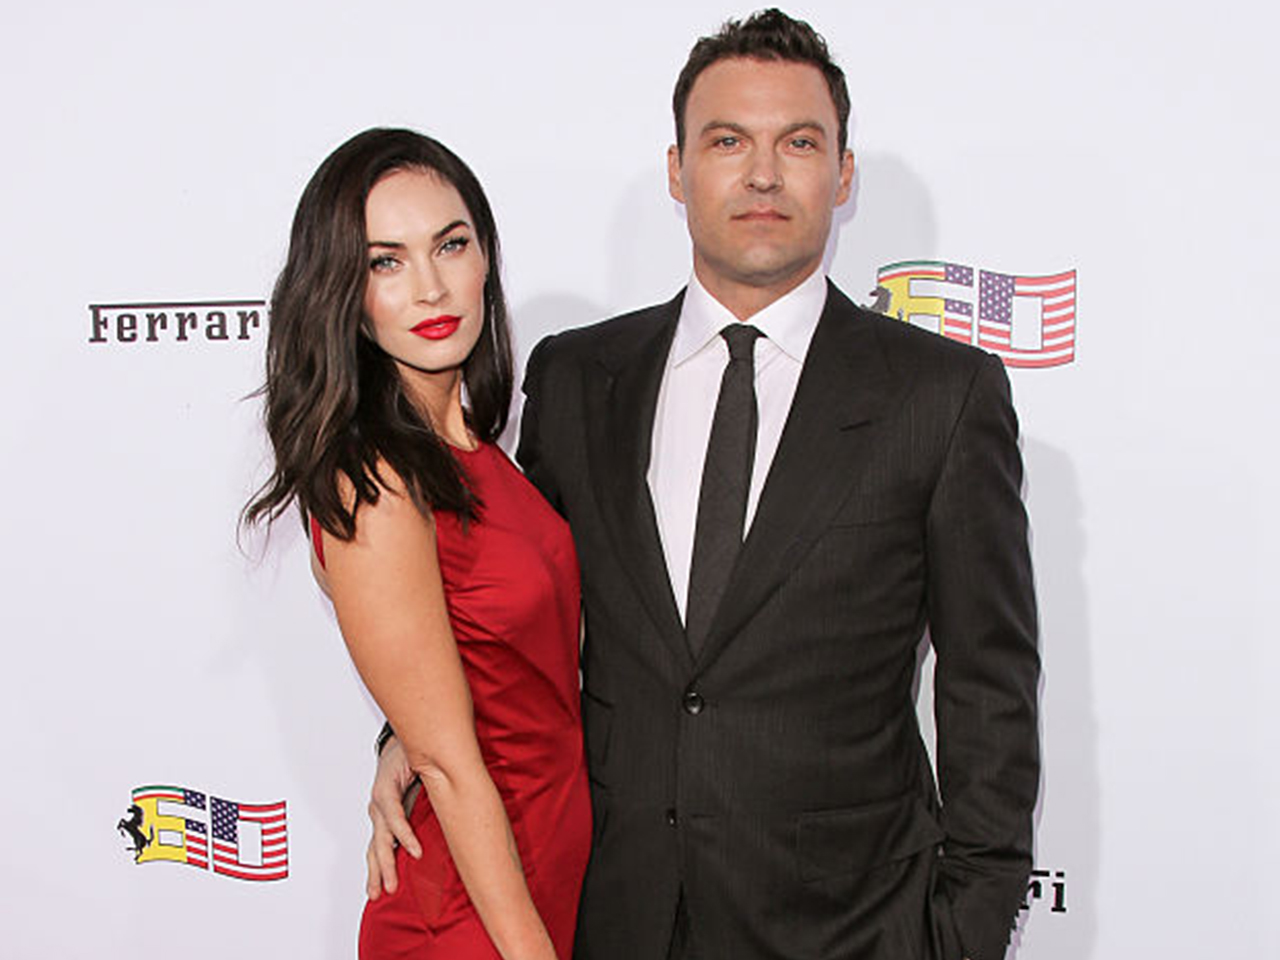 Actors Megan Fox (L) and Brian Austin Green (R) attend Ferrari's 60th Anniversary In The USA Gala at the Wallis Annenberg Center for the Performing Arts